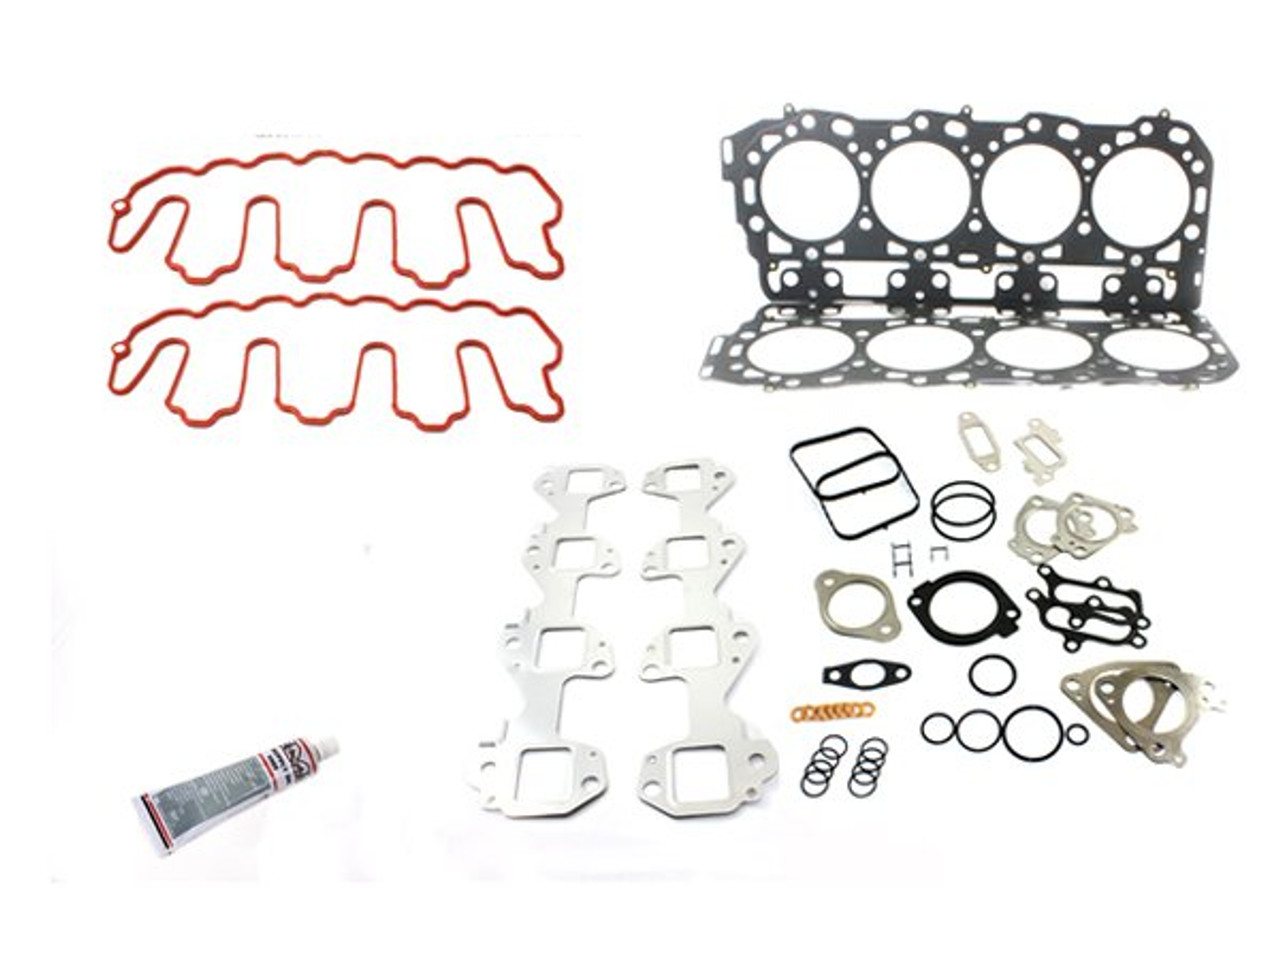 LBZ Head Gasket Kit with Exhaust Manifold Gaskets, no bolts